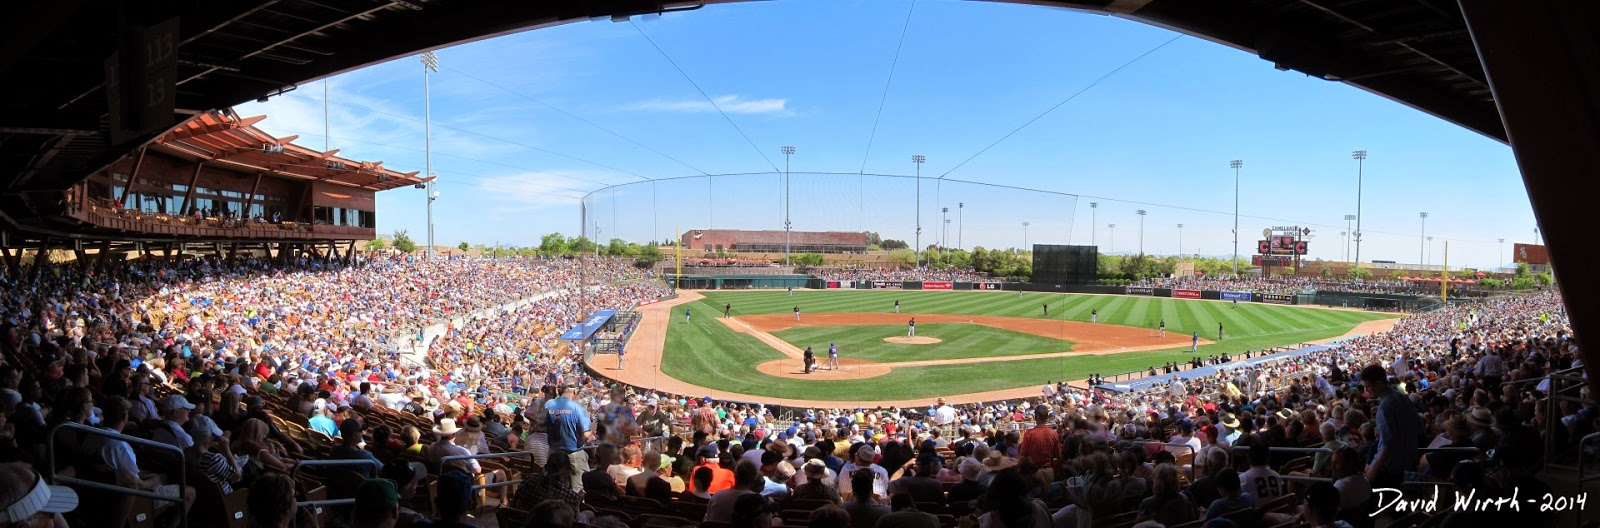 panorama baseball stadium